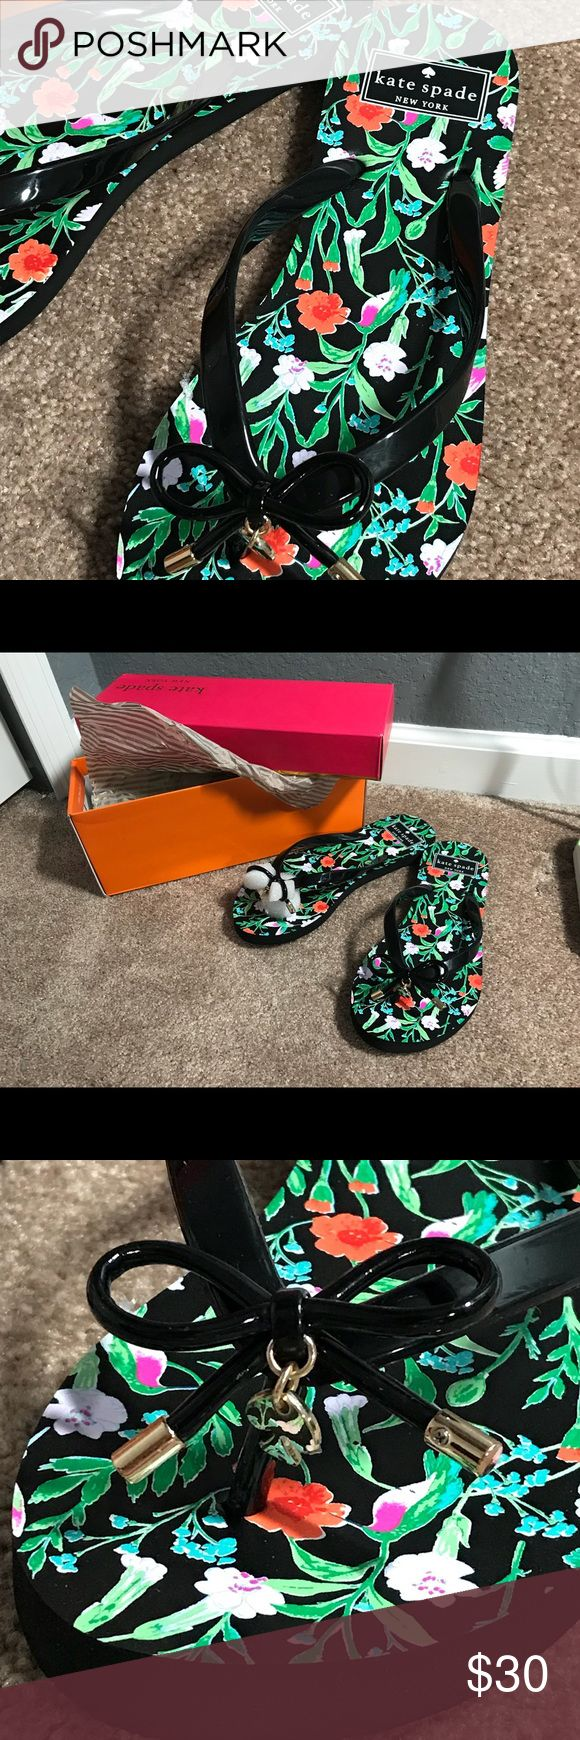 Kate Spade New York Nova Black Floral Flip Flop Brand new, in box, never worn Kate Spade New York flip flops. They are black with a floral print and tiny bows. kate spade Shoes Sandals